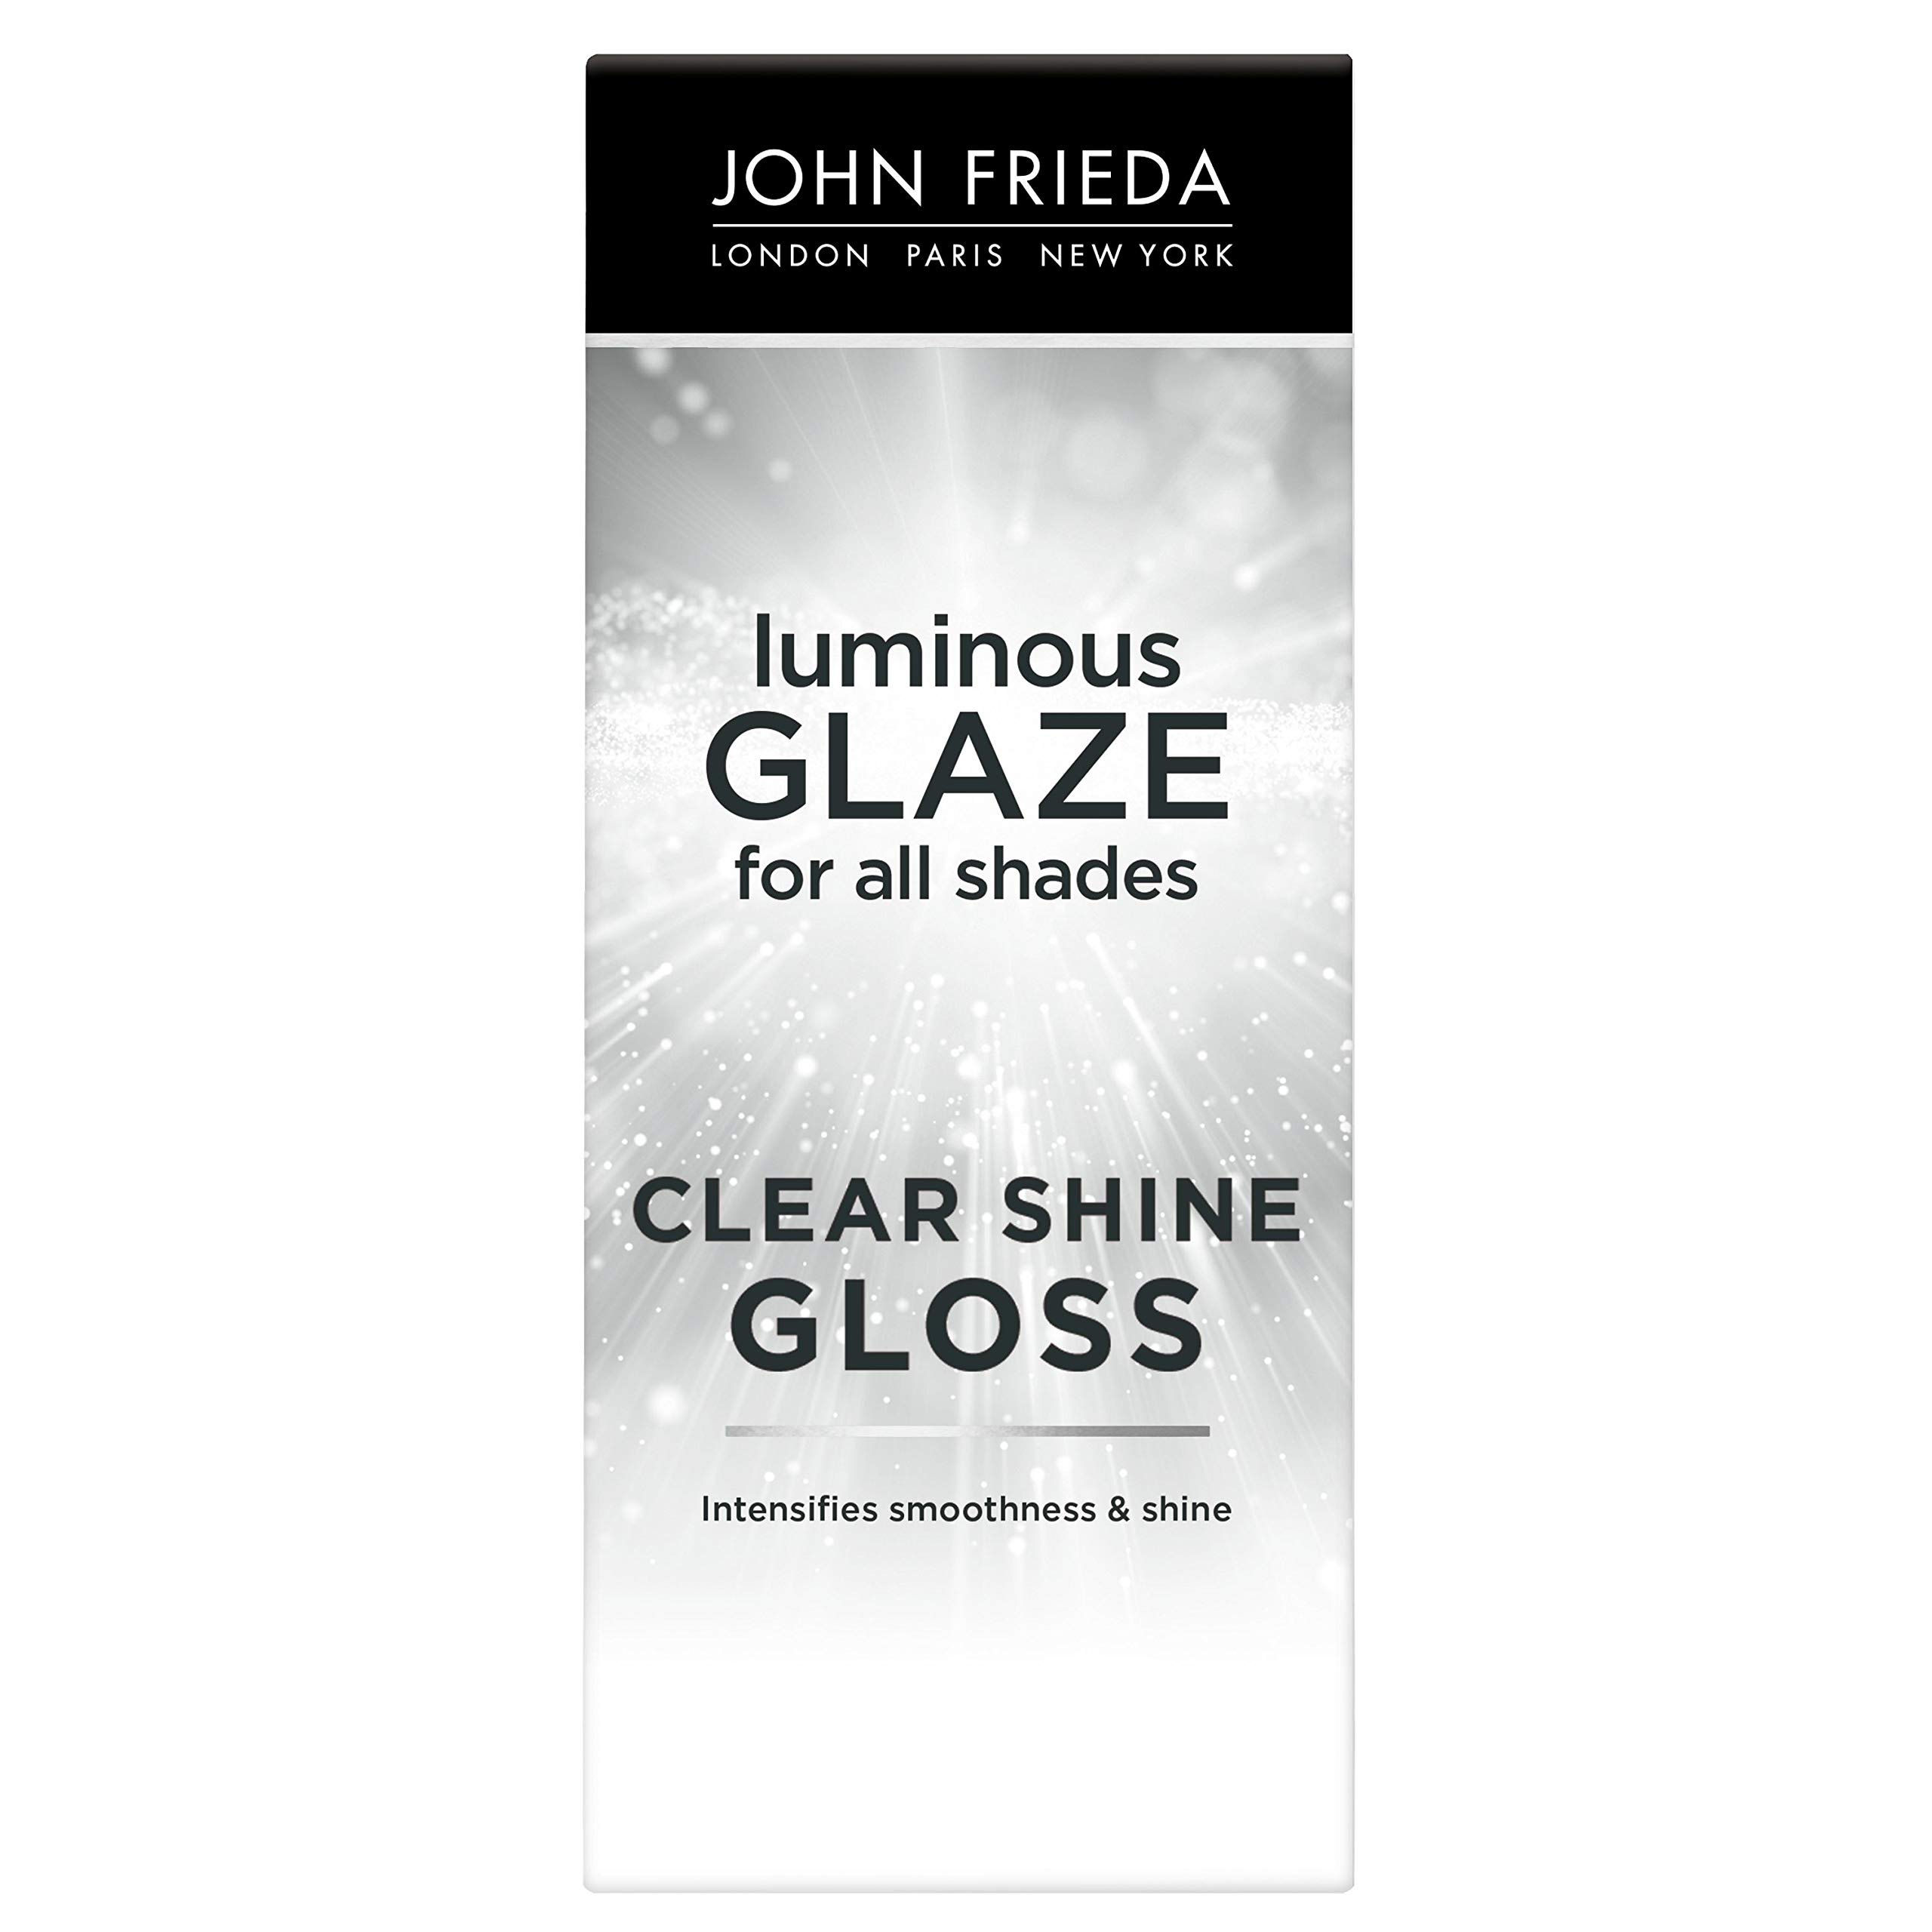 John Frieda Luminous Glaze Clear Shine Gloss, Anti-Fade, Color Enriching Gloss, Safe for Color Treated Hair, 6.5 Ounces